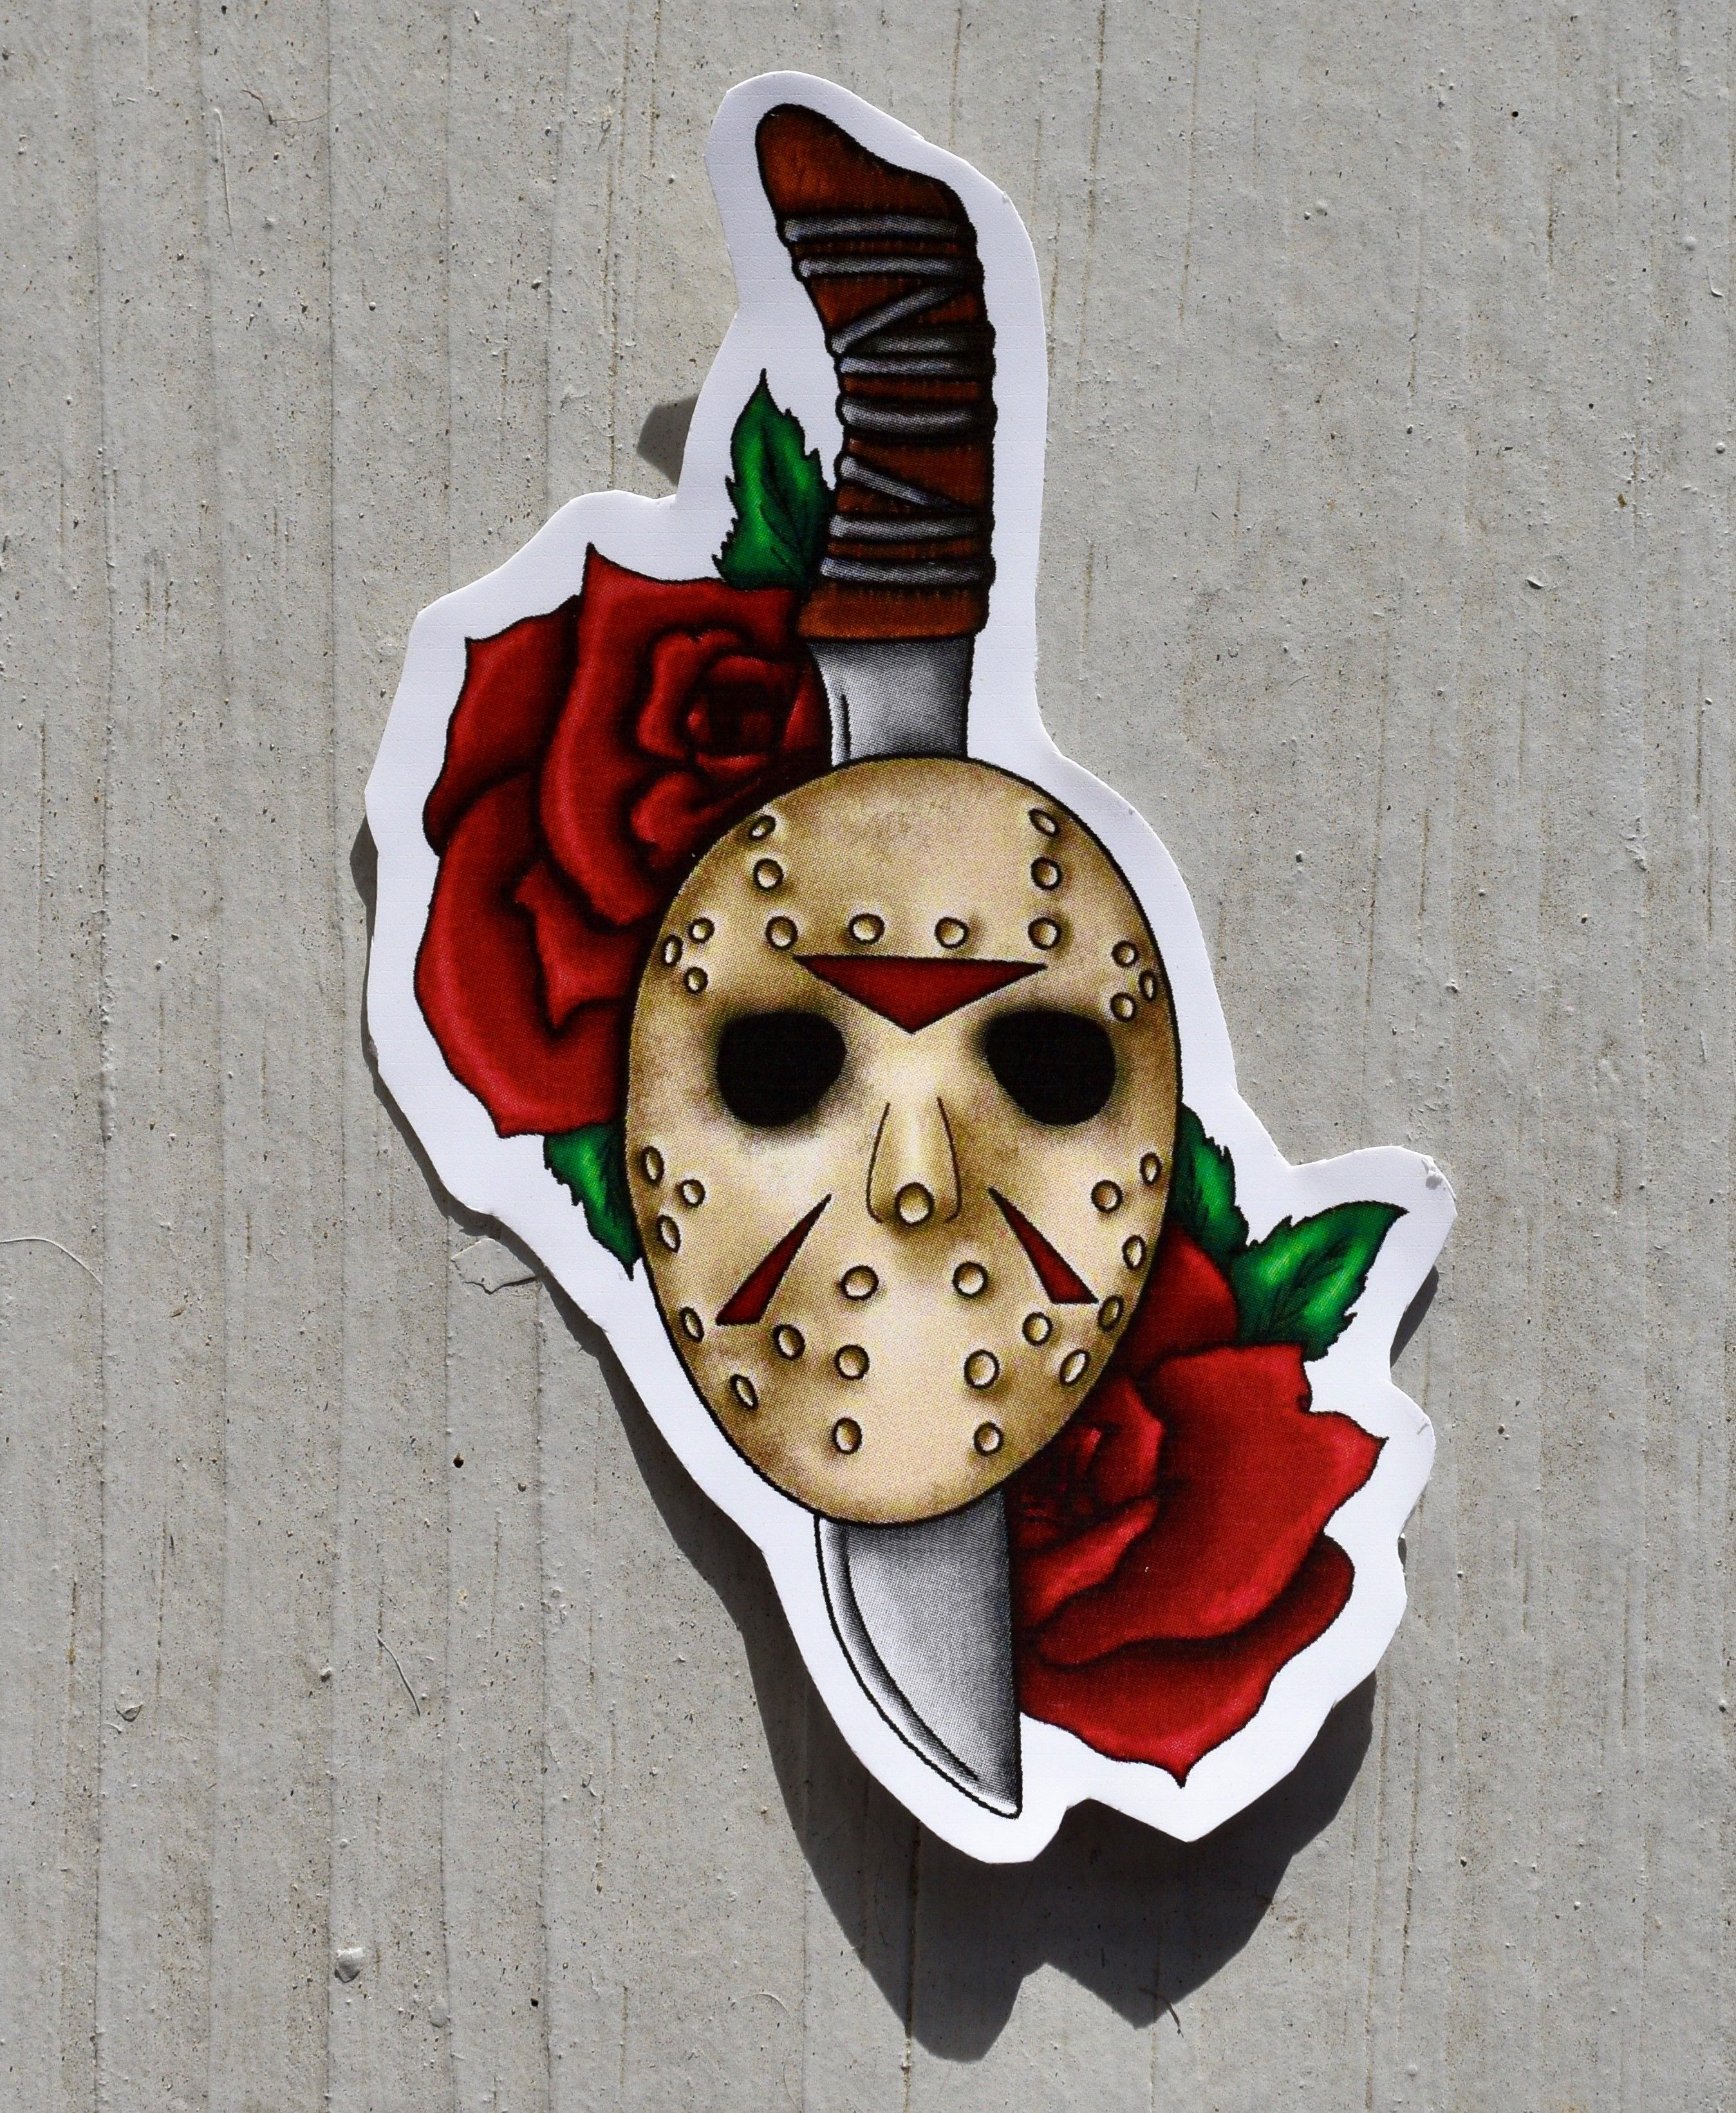 Friday The 13th Sticker Jason Voorhees Mask And Machete Etsy Monster Tattoo Halloween Tattoos Friday The 13th Tattoo